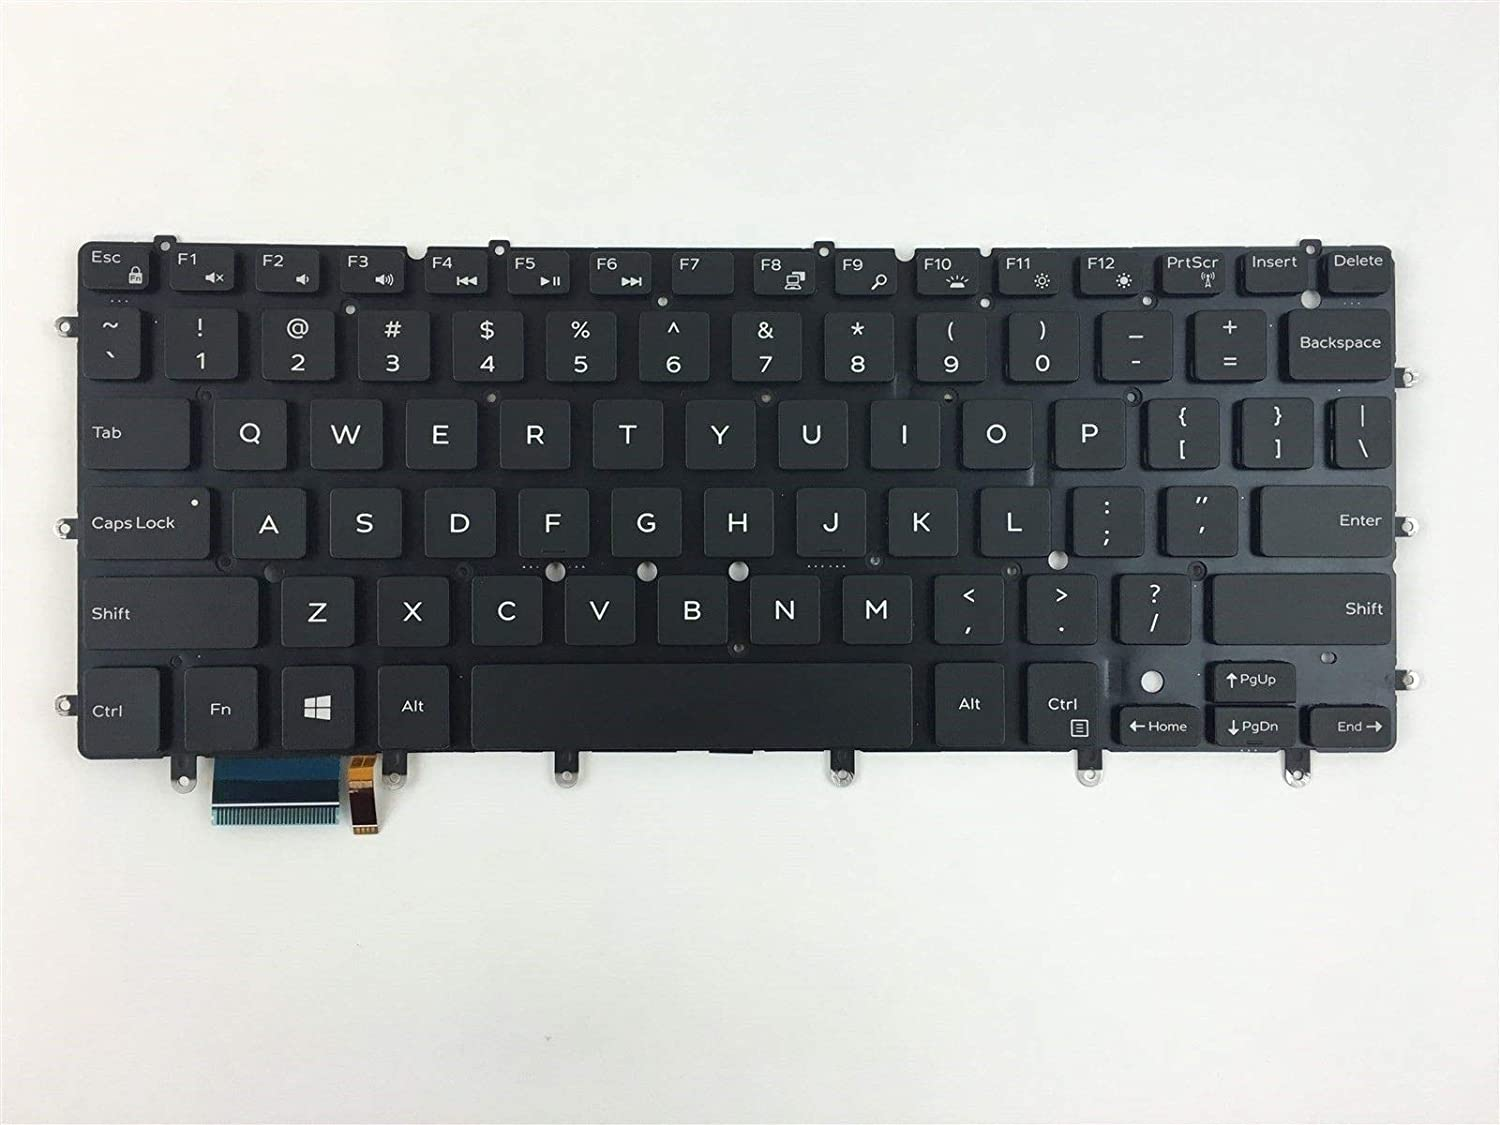 New shopping Laptop Backlit Ranking integrated 1st place Keyboard Without Dell Replacement Frame for